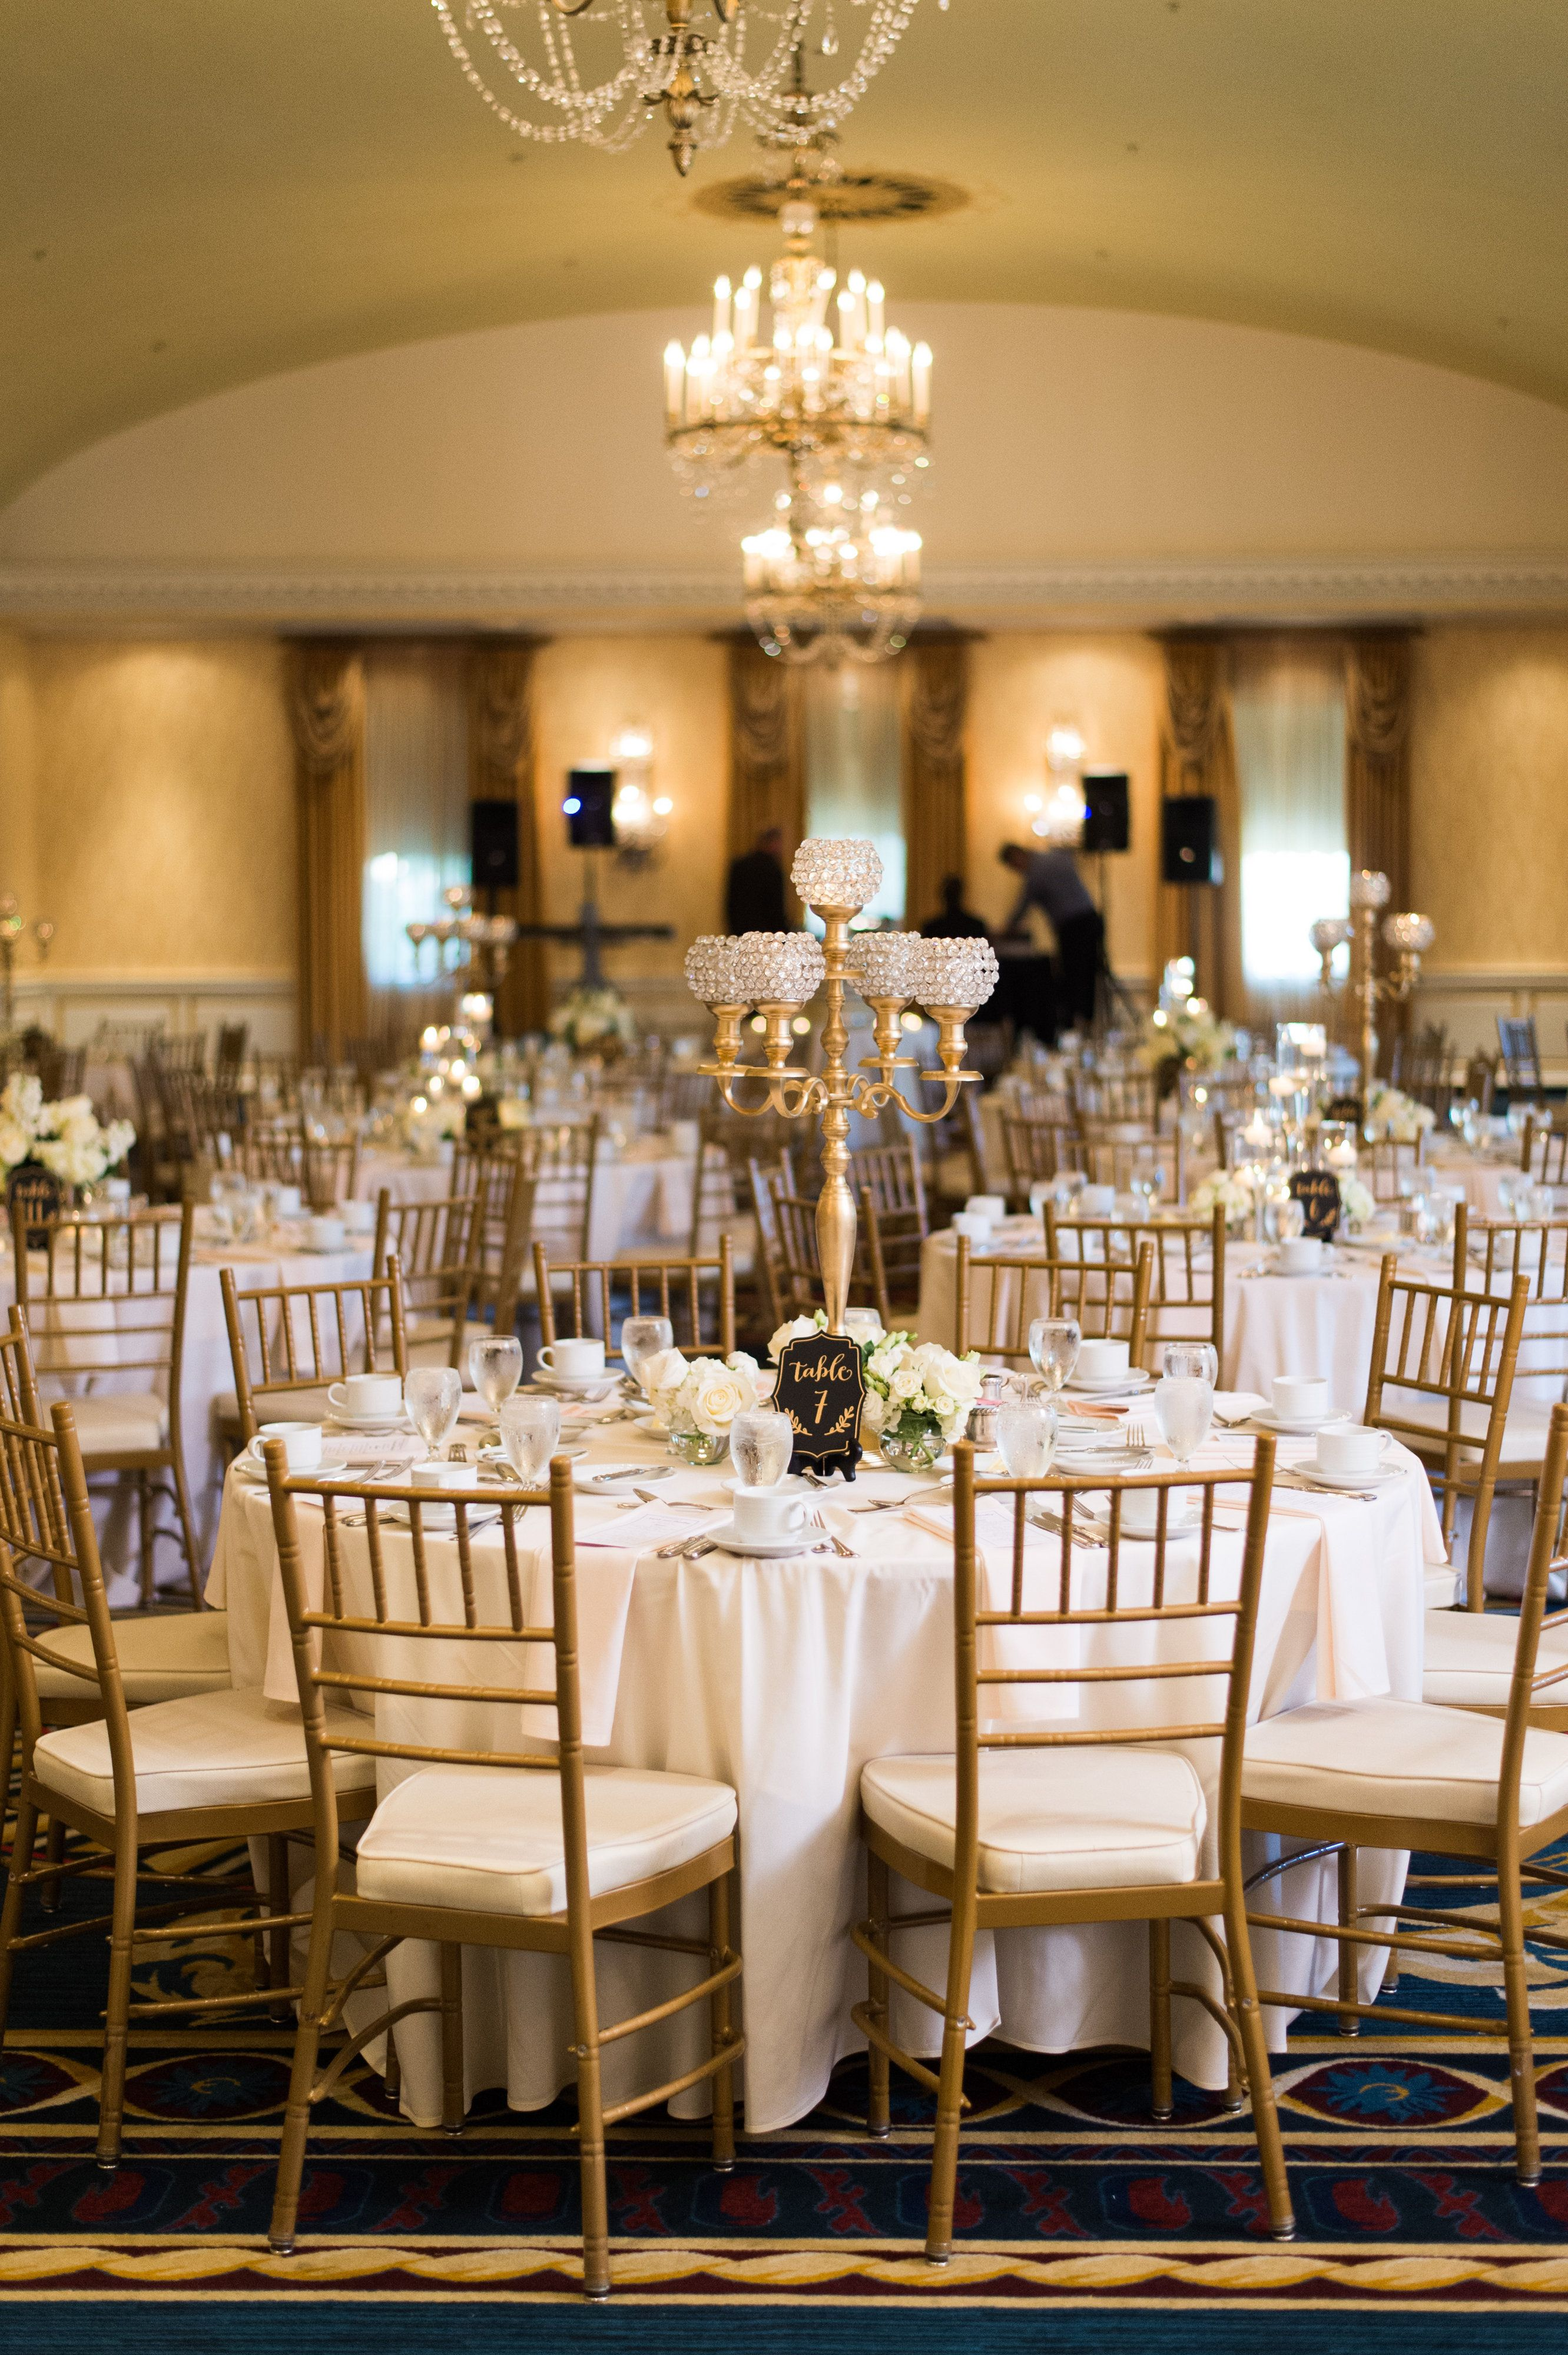 The Alexandria Ballroom Dearborn Inn Marriott Http Www Justinandmaryweddings